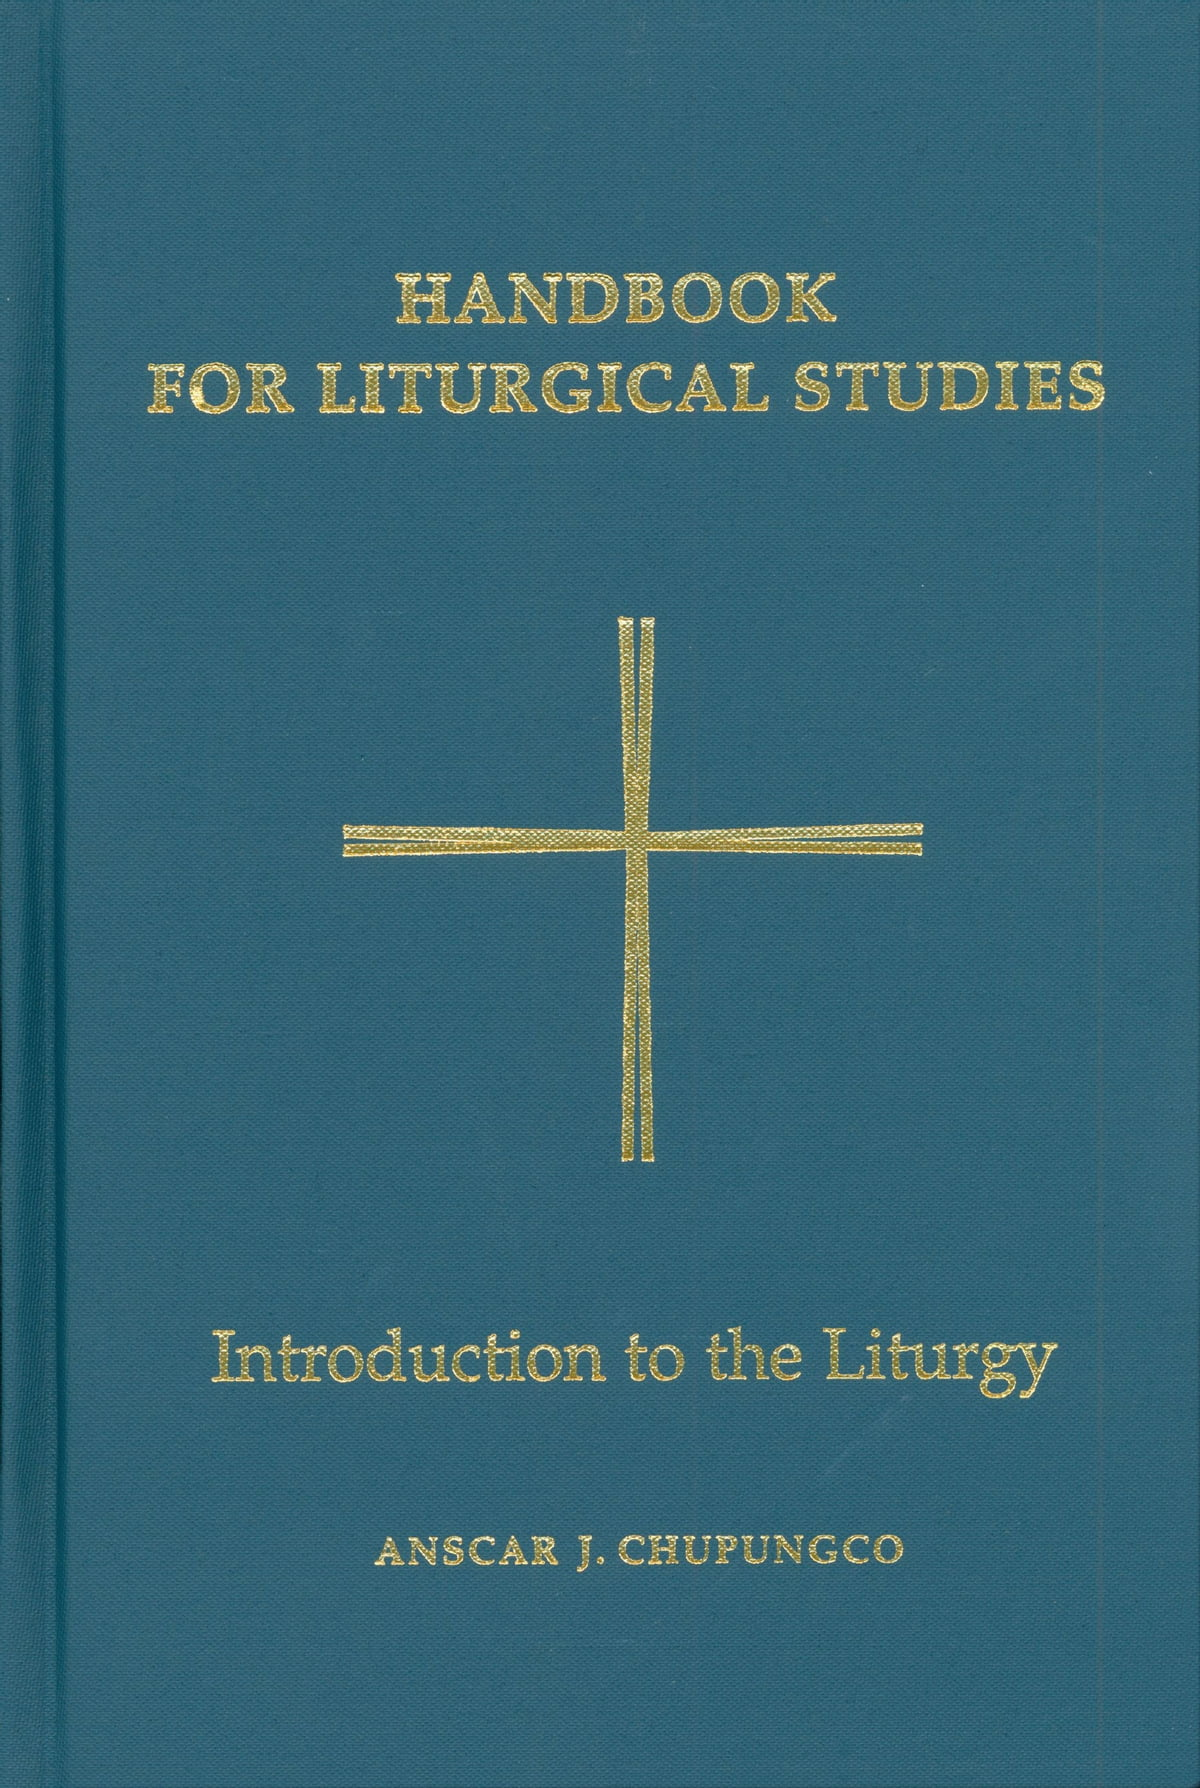 Handbook for Liturgical Studies, Volume I eBook by - 9780814662861 |  Rakuten Kobo